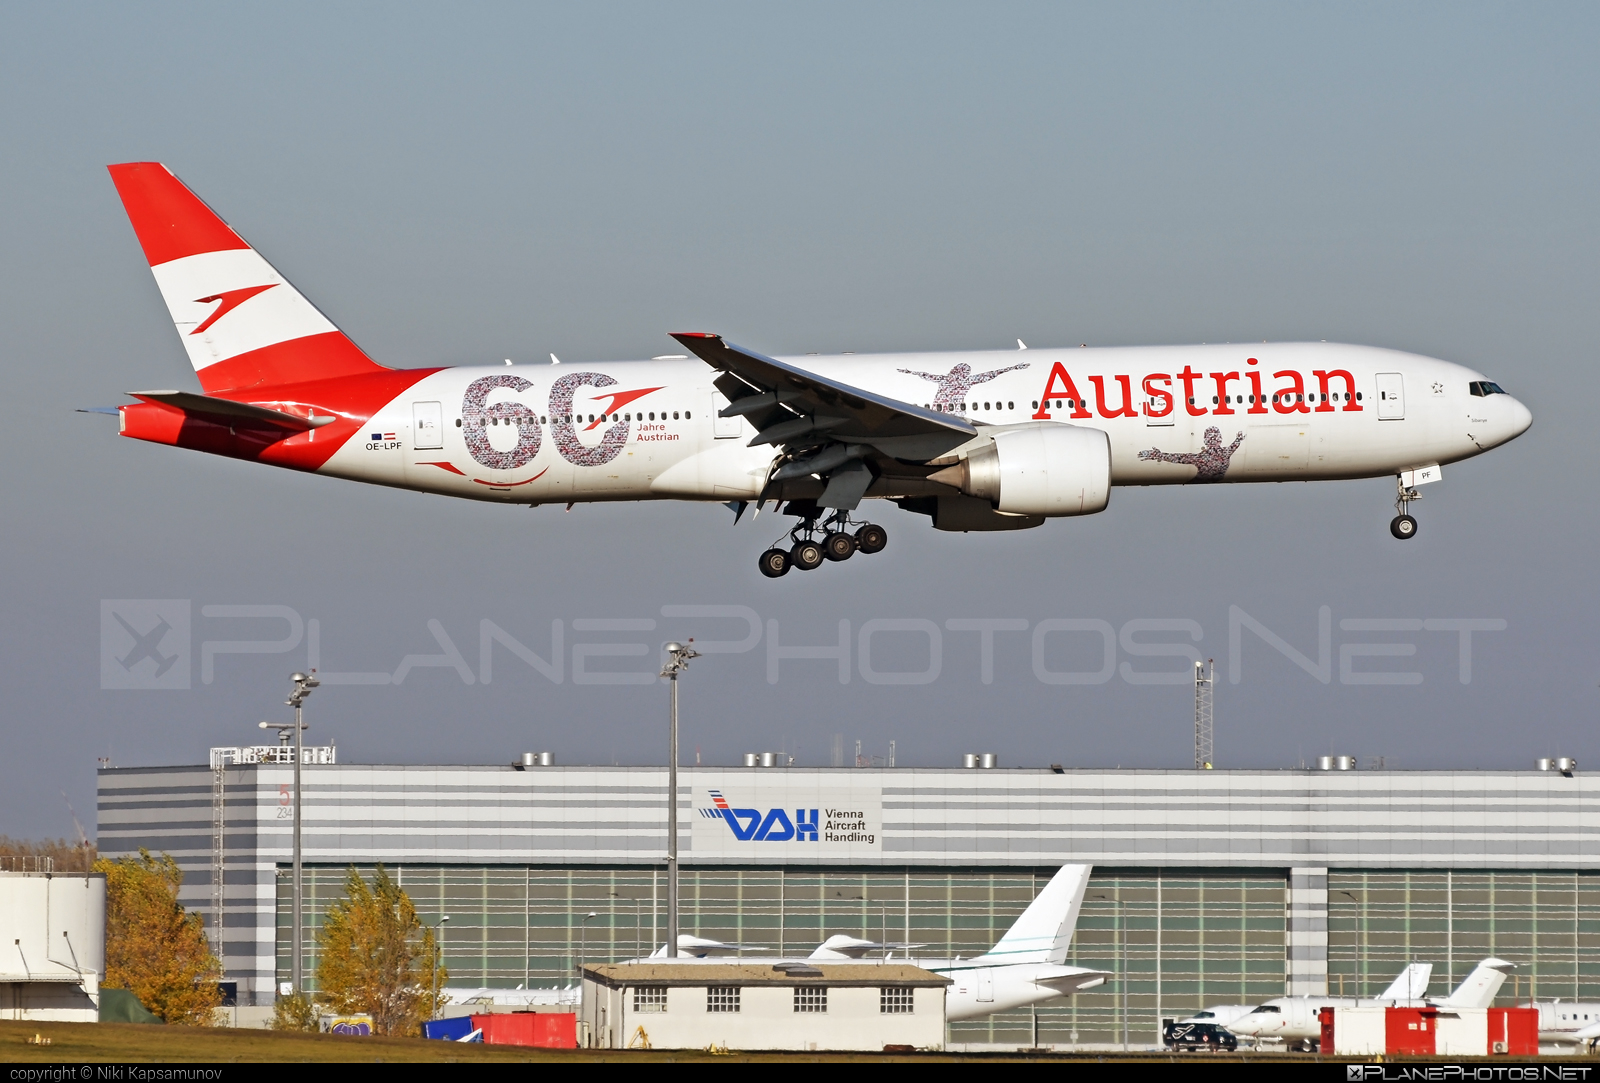 Boeing 777-200ER - OE-LPF operated by Austrian Airlines #b777 #b777er #boeing #boeing777 #tripleseven